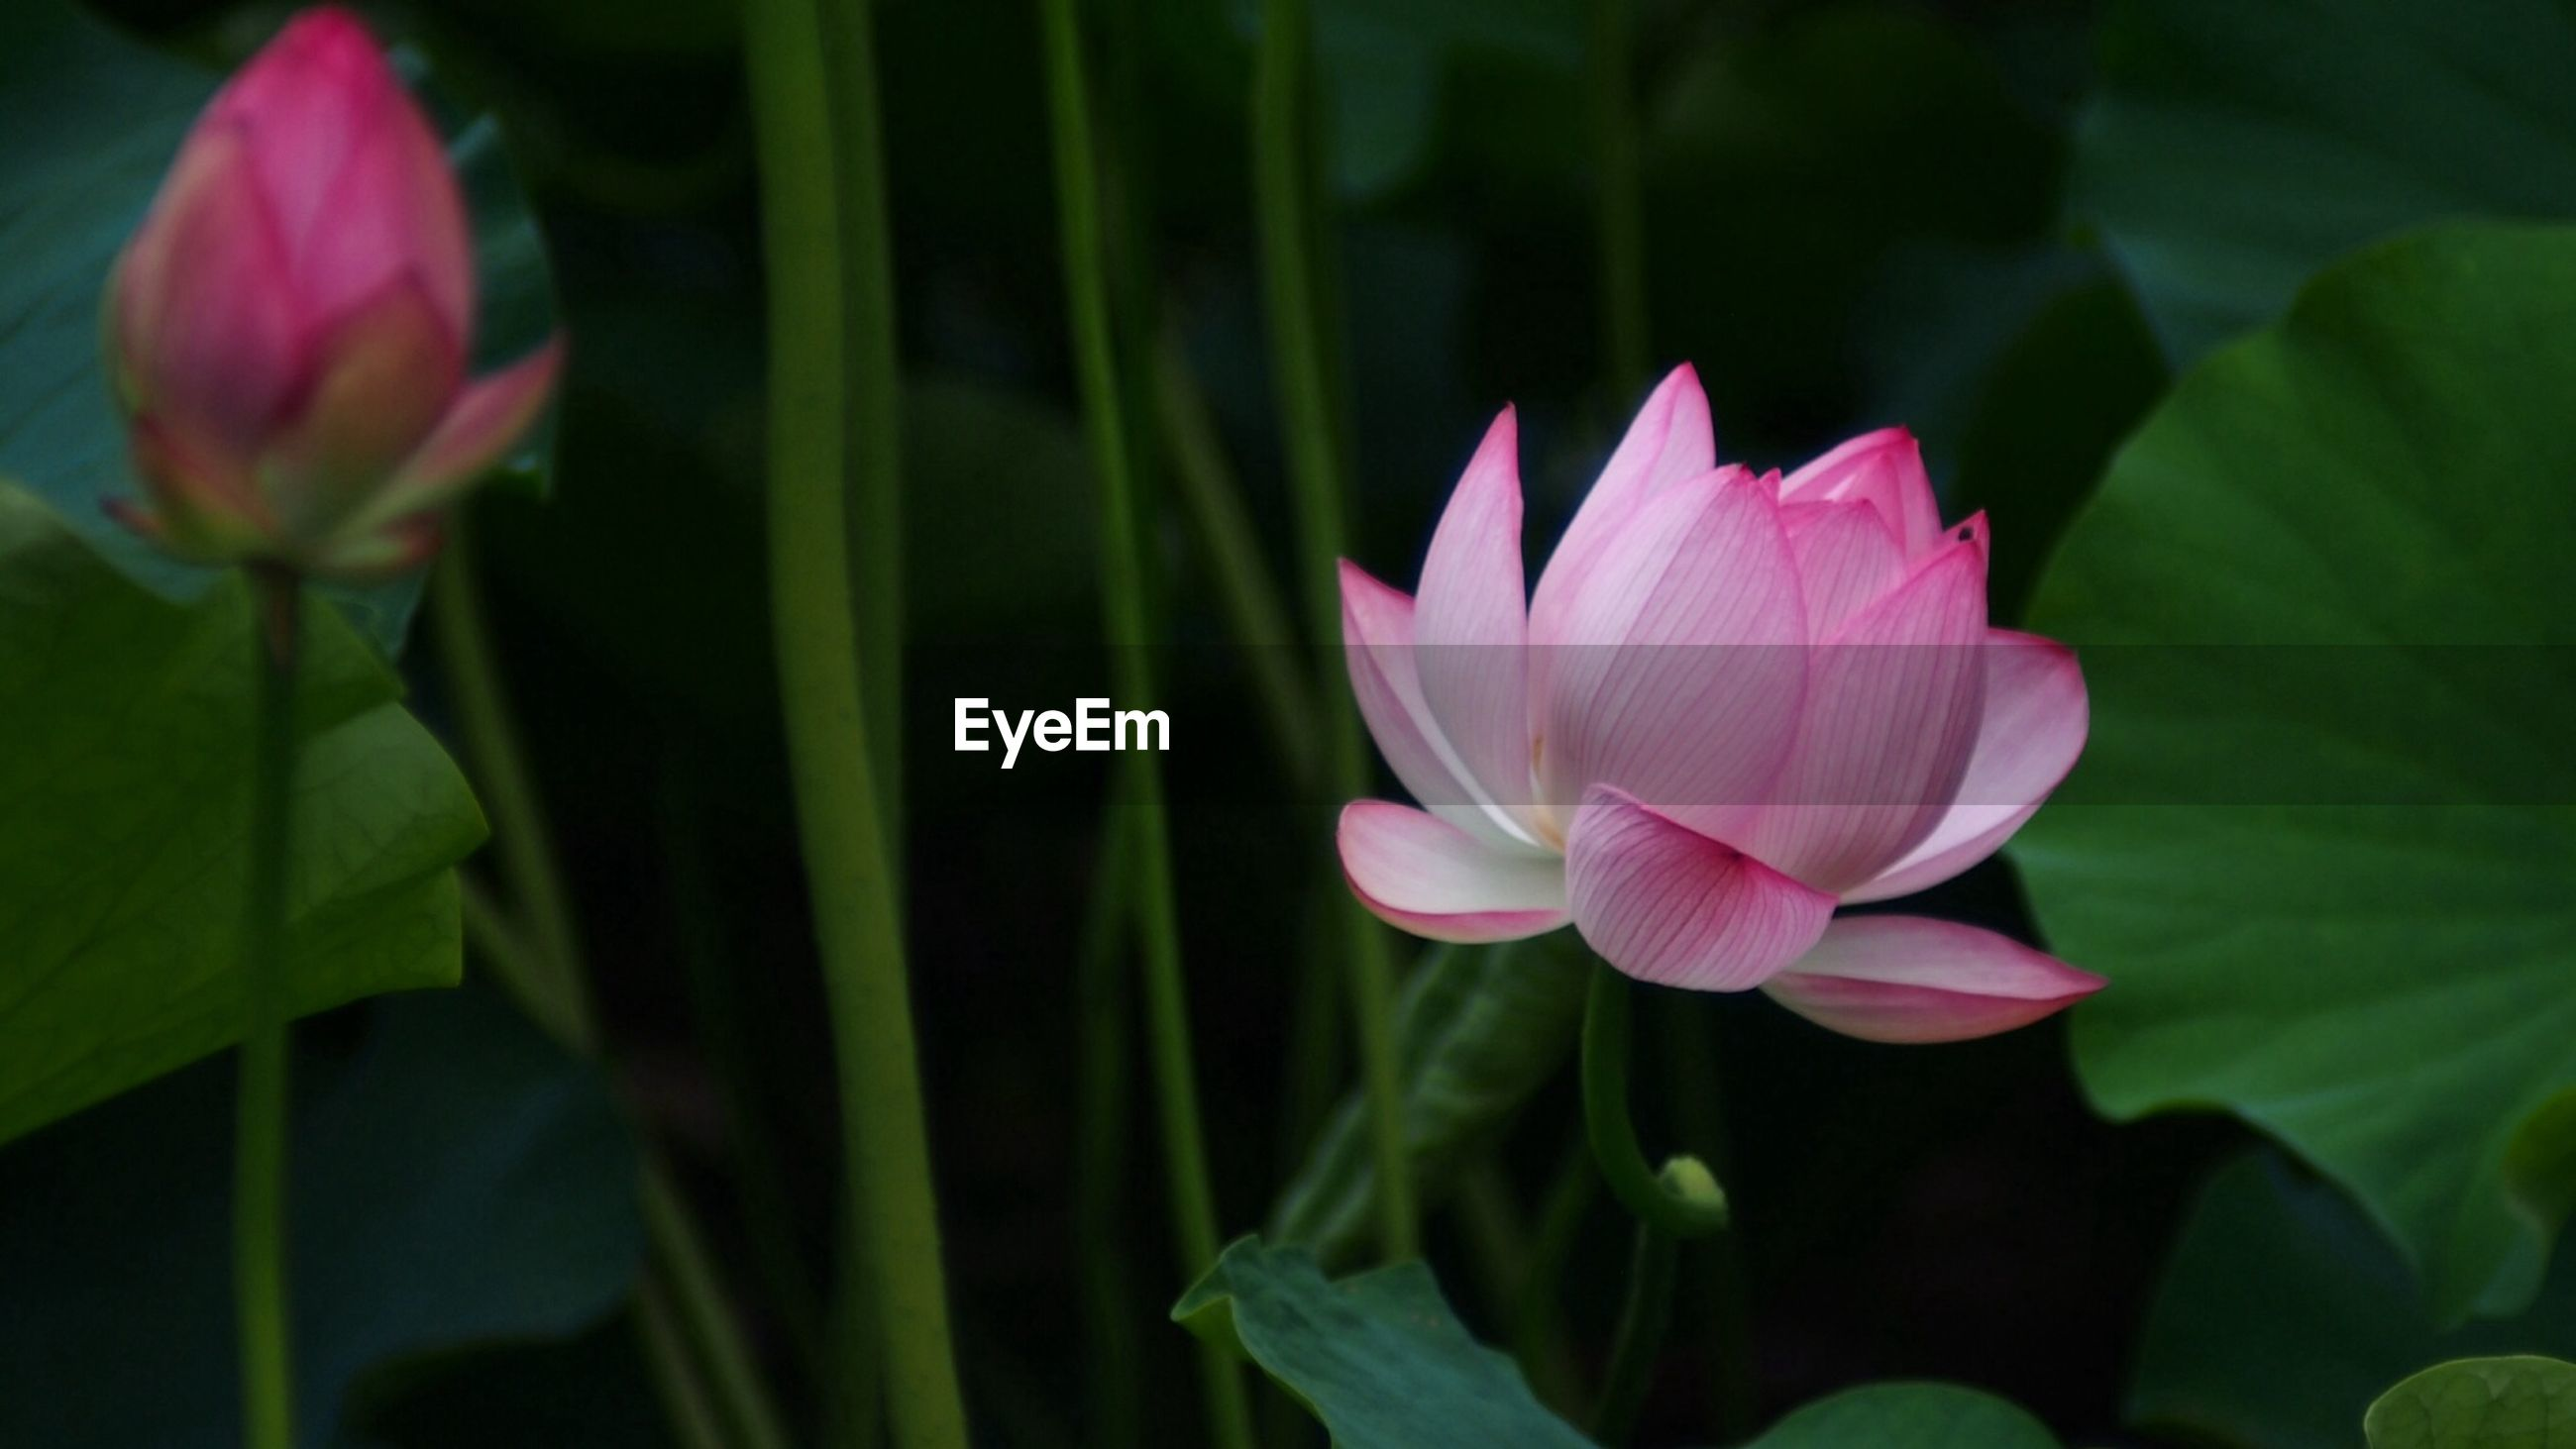 flower, petal, freshness, fragility, flower head, growth, beauty in nature, pink color, blooming, plant, nature, close-up, leaf, focus on foreground, stem, in bloom, single flower, green color, selective focus, field